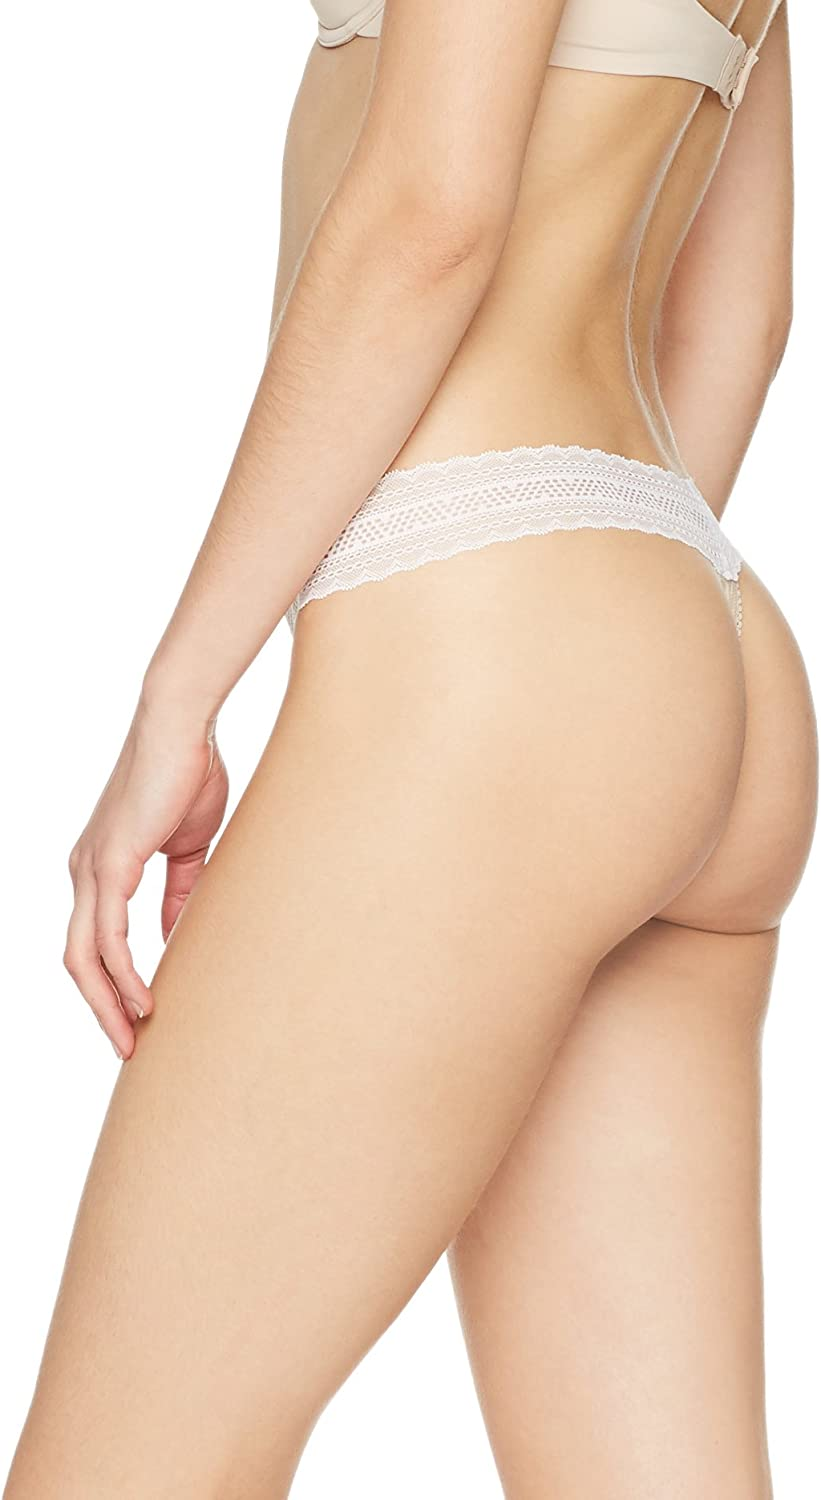 Pack of 3 Brand Iris /& Lilly Womens Thong Cotton with Lace Trim